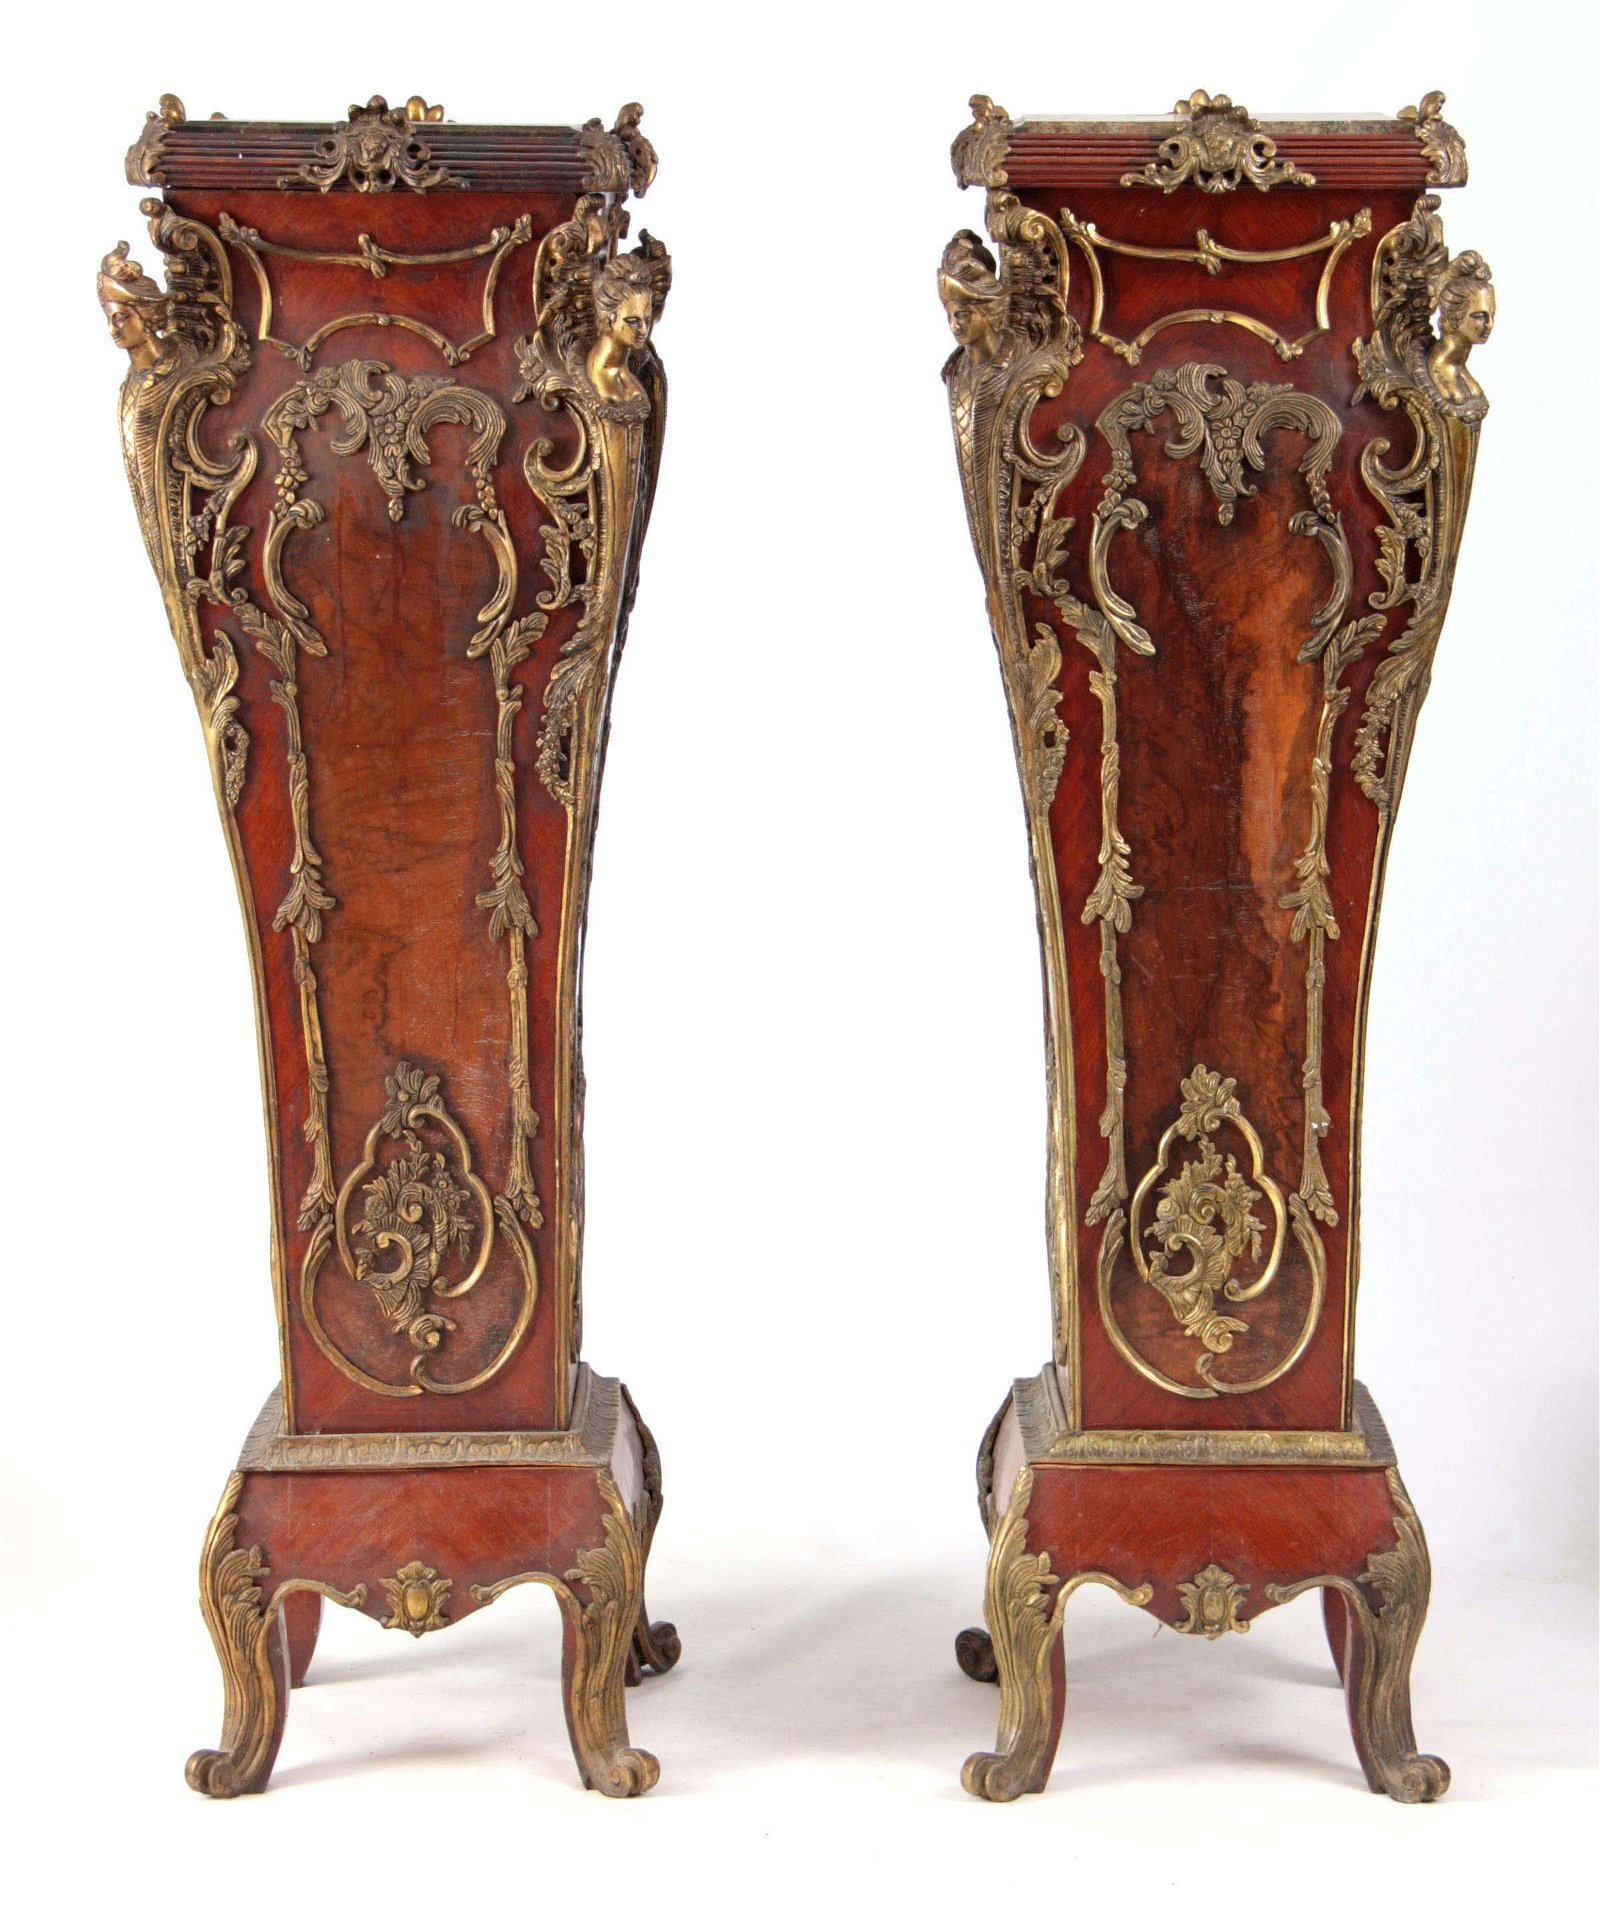 A PAIR OF 20TH CENTURY LOUIS XV STYLE FRENCH ORMOL